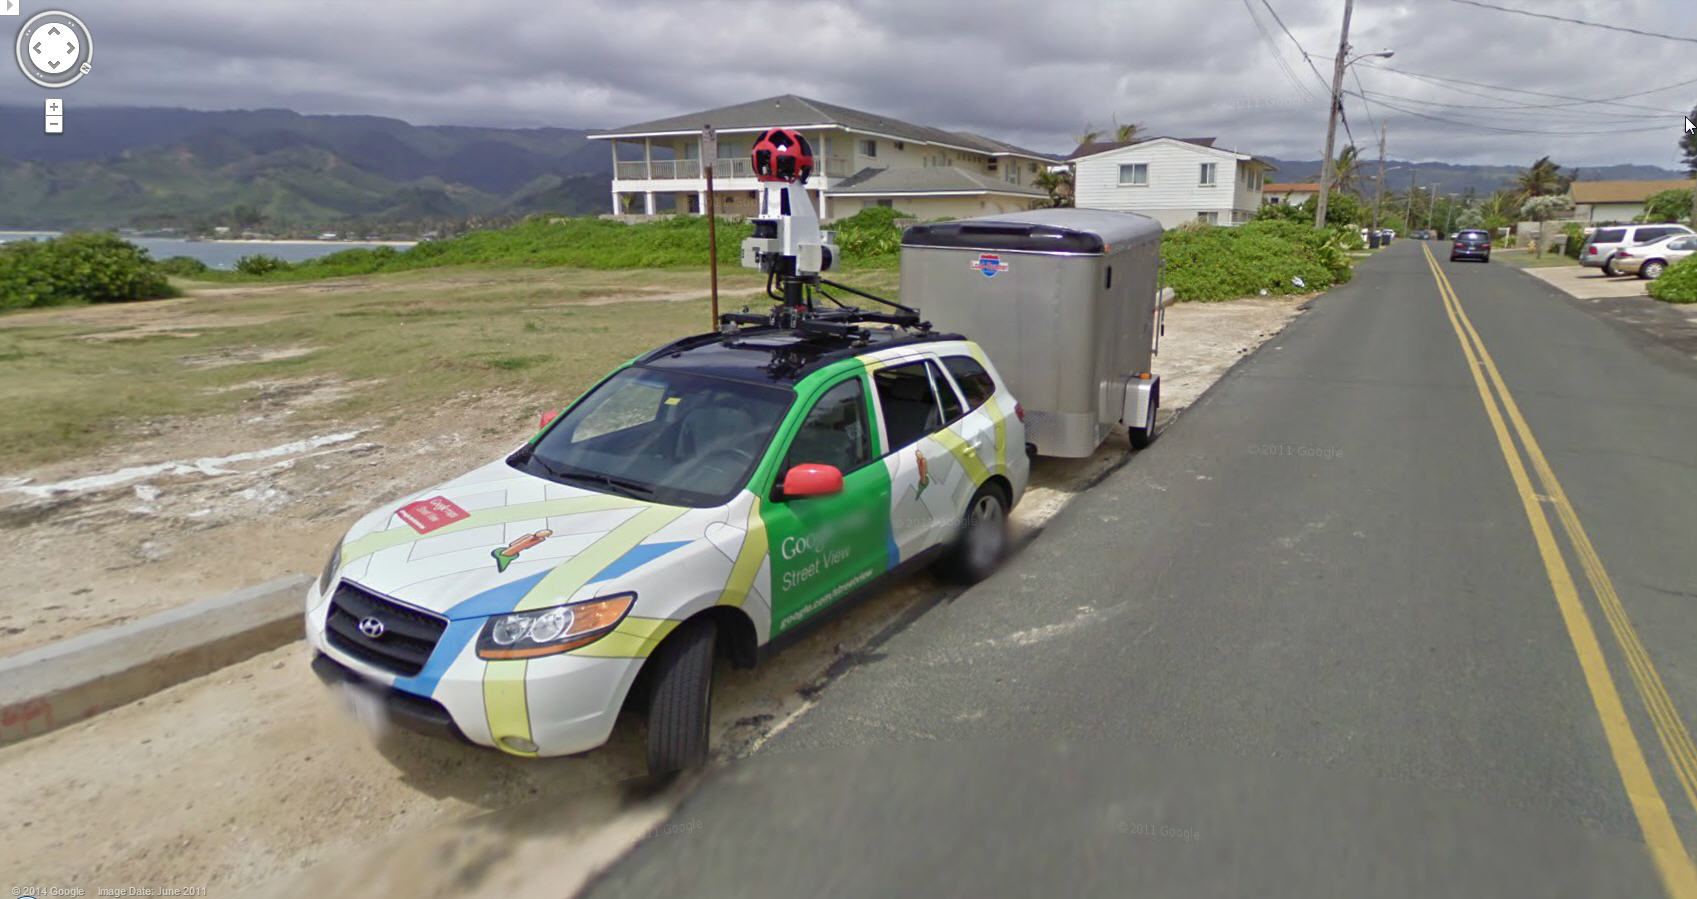 how to use google street view on mobile